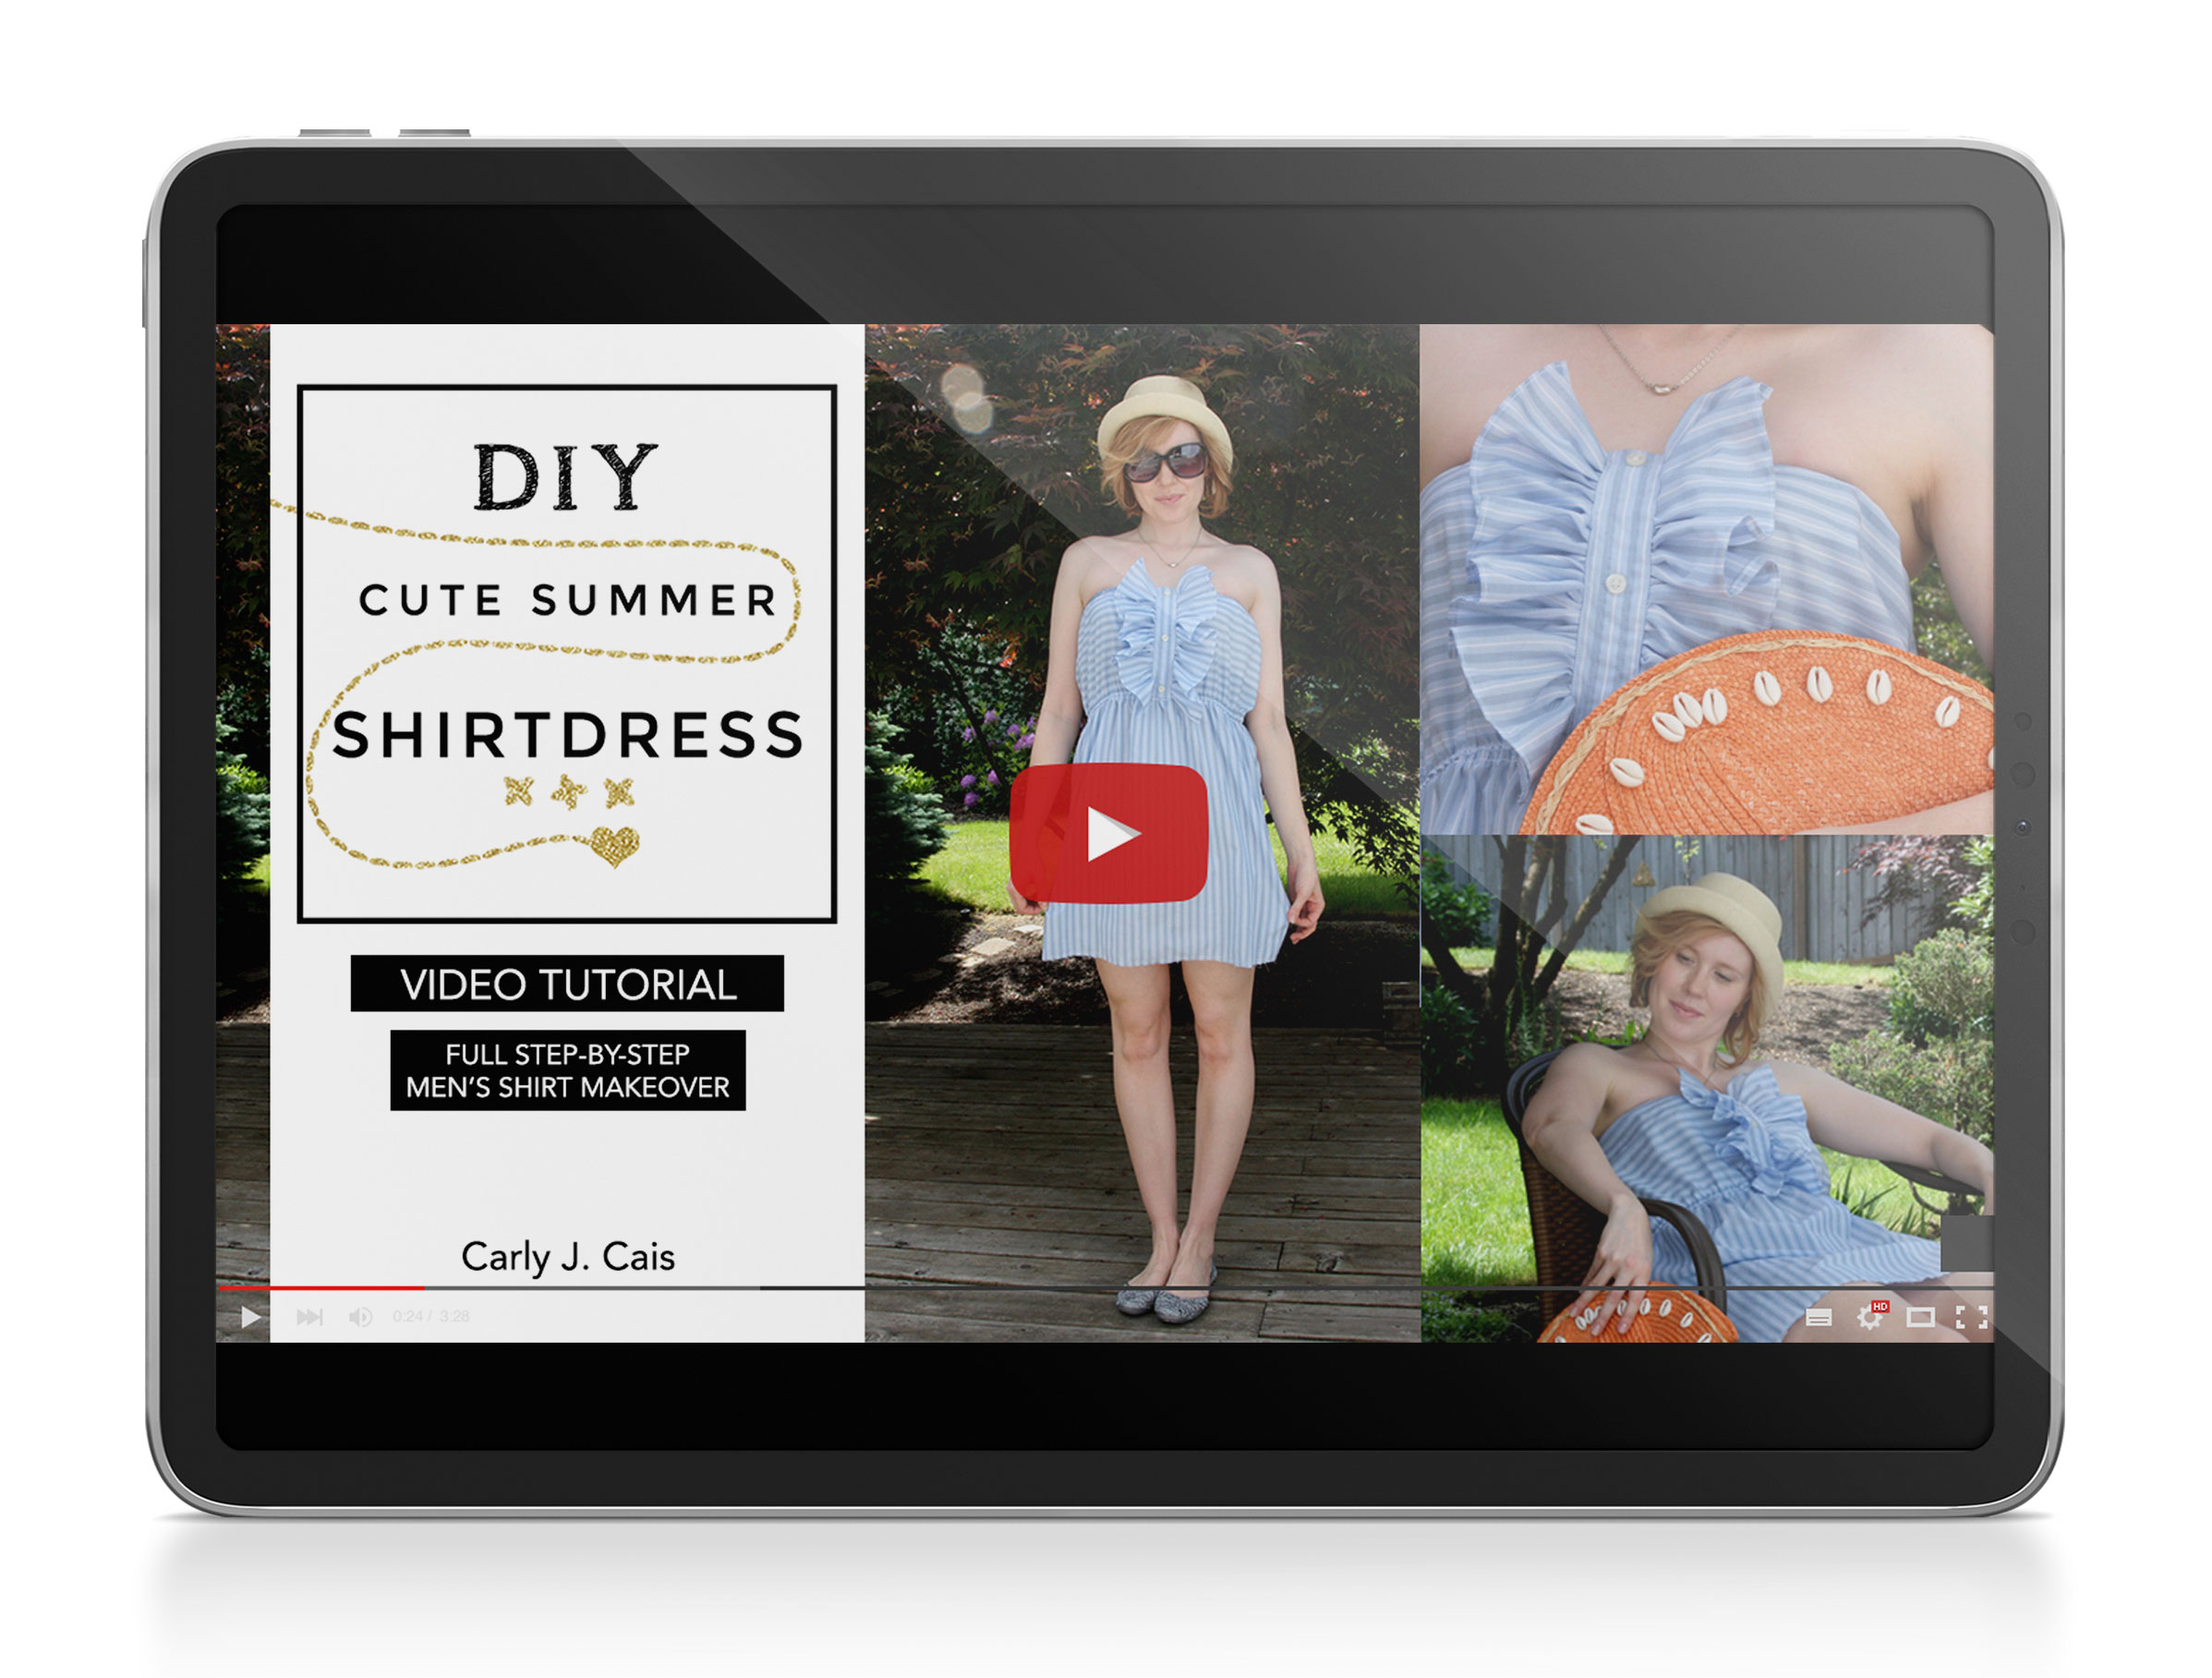 DIY Cute Summer Shirtdress Video Tutorial product